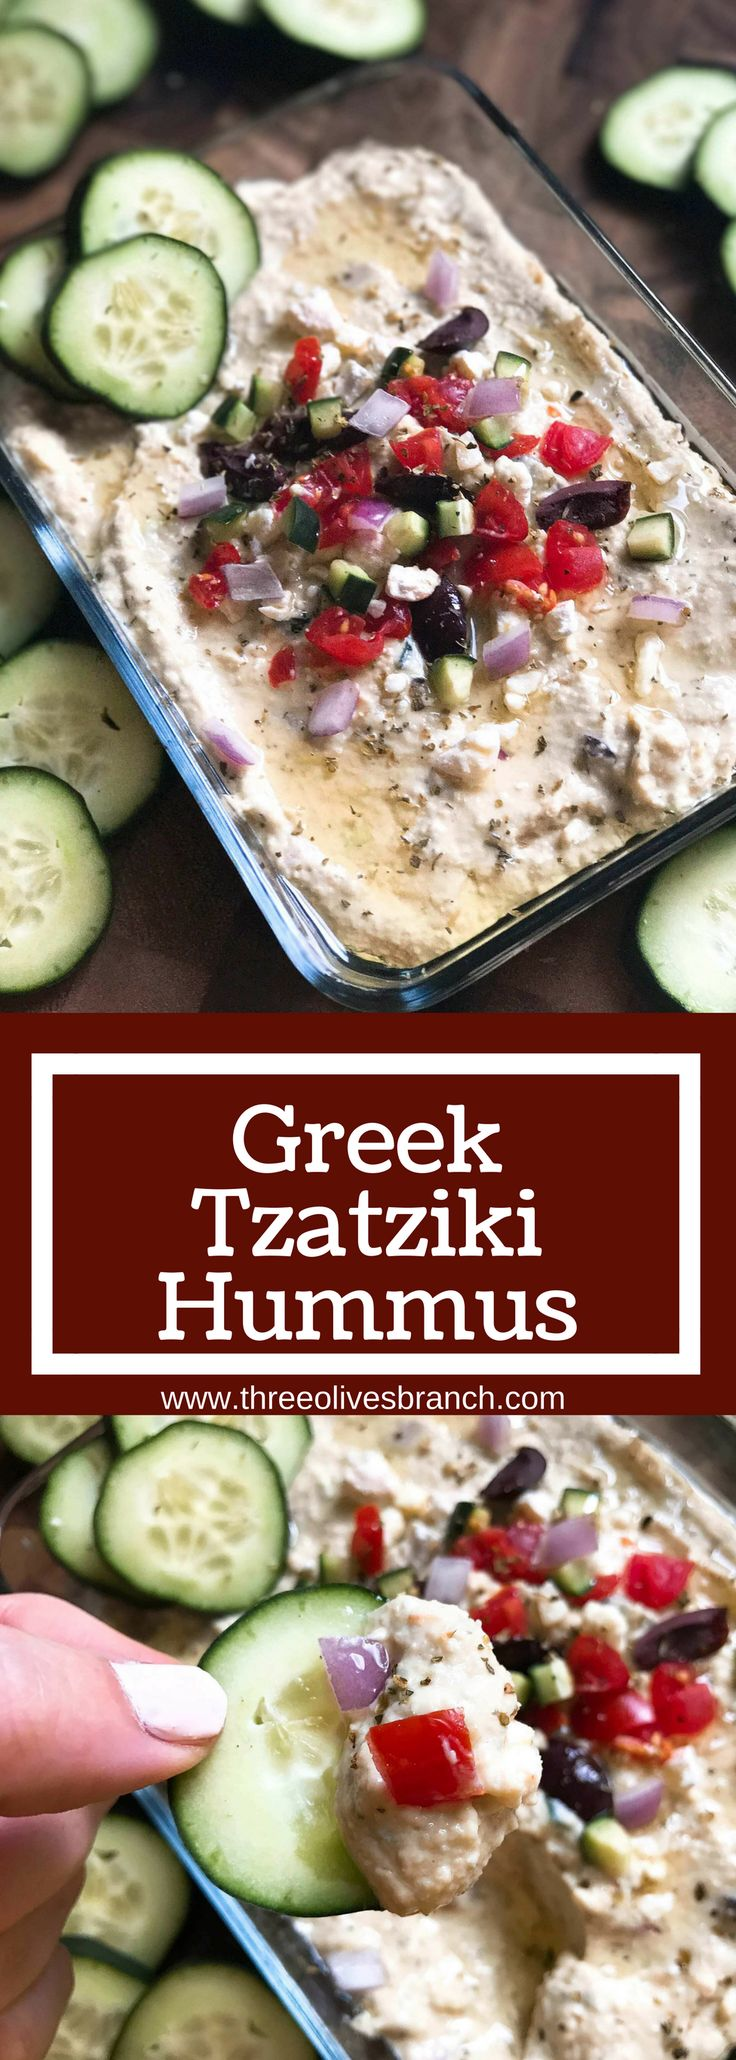 Less than 5 minutes to make this delicious and healthy hummus! Perfect as an appetizer, snack, or spread, the flavors of tzatziki and Greek salad are bright and fresh. Full of protein, vegetarian and vegan friendly. Perfect for game day! Greek Tzatziki Hummus | Three Olives Branch | www.threeolivesbranch.com